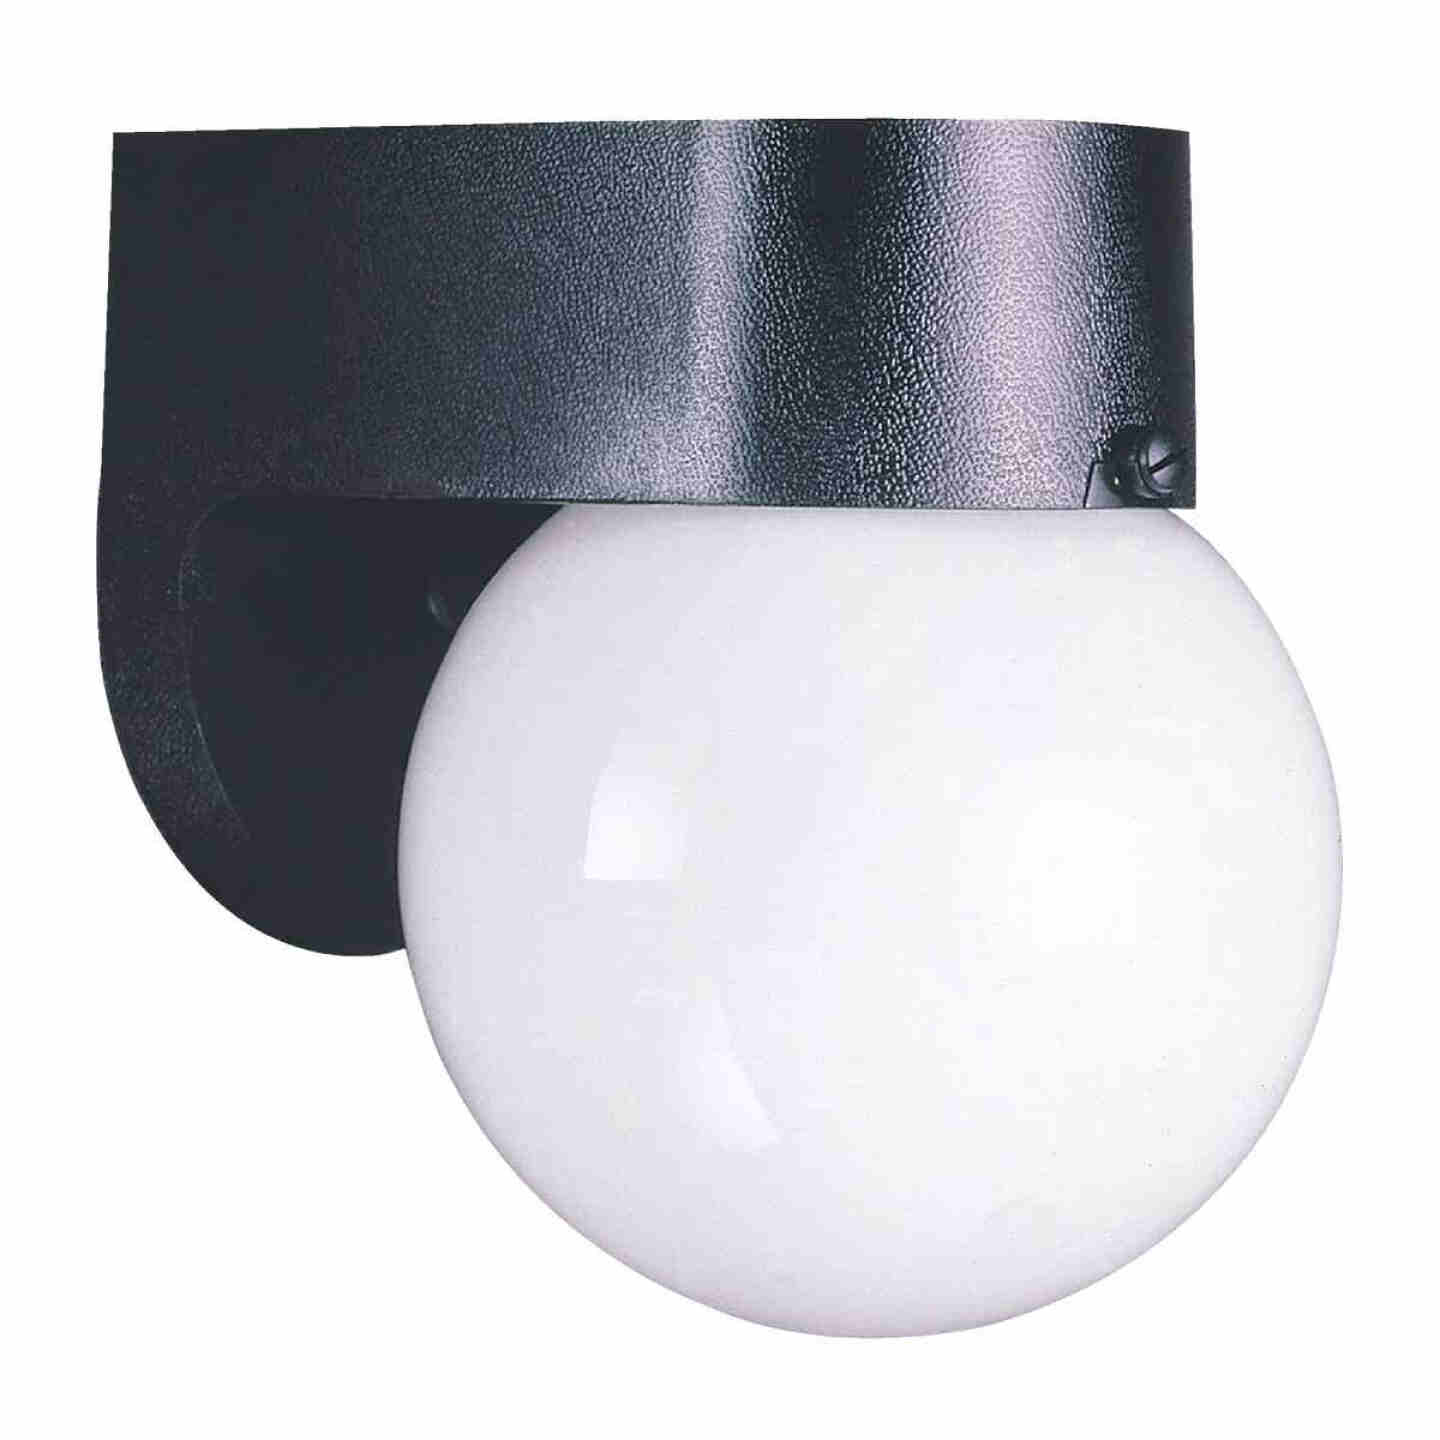 Home Impressions Black Incandescent A15 Outdoor Wall Light Fixture Image 1